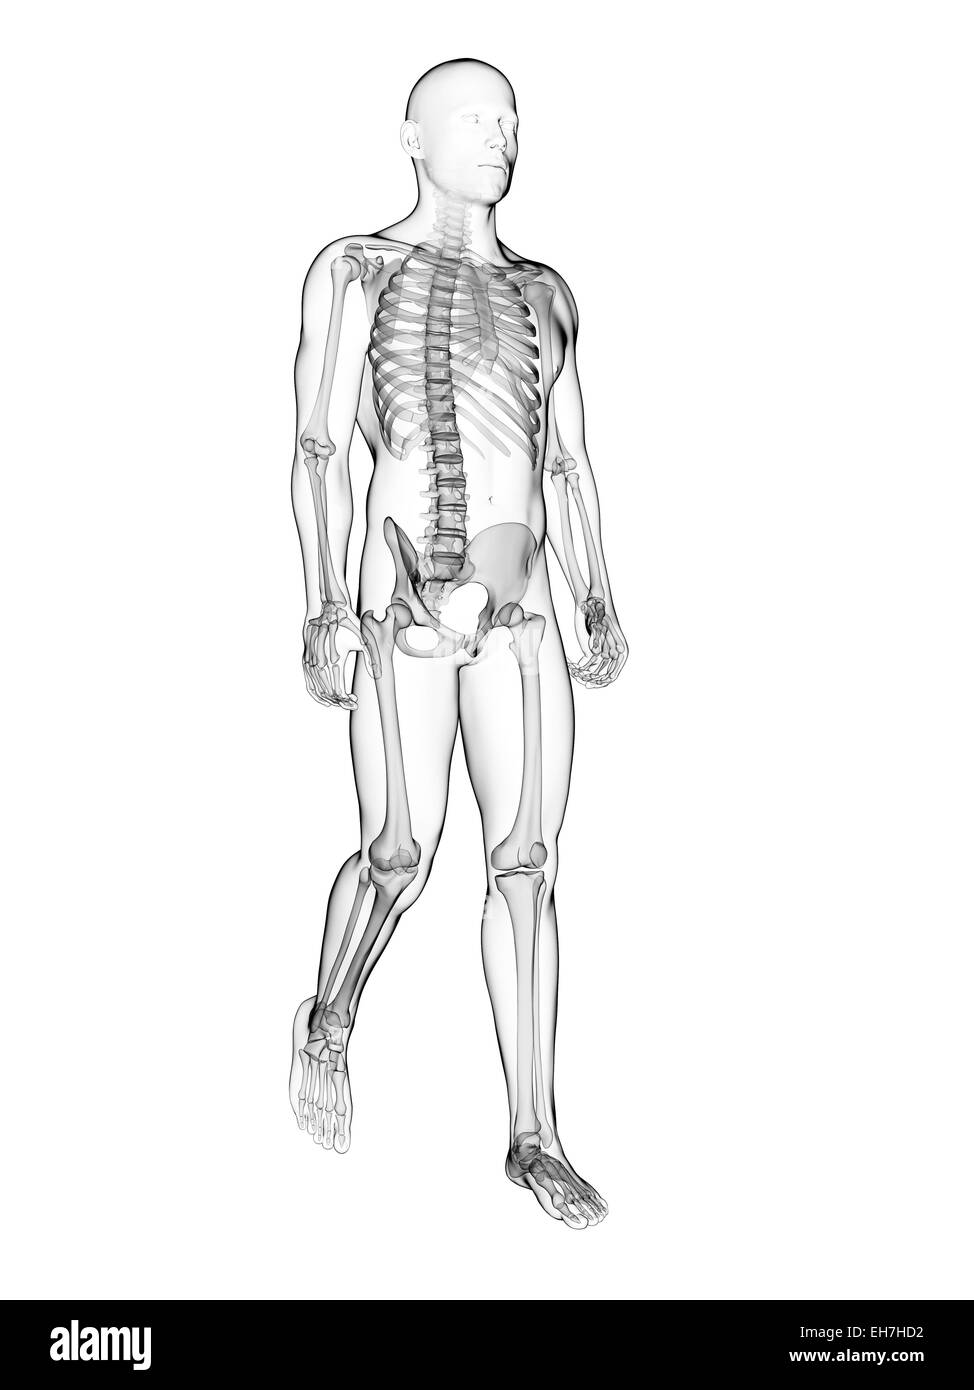 Human Skeletal System Black And White Stock Photos Images Alamy